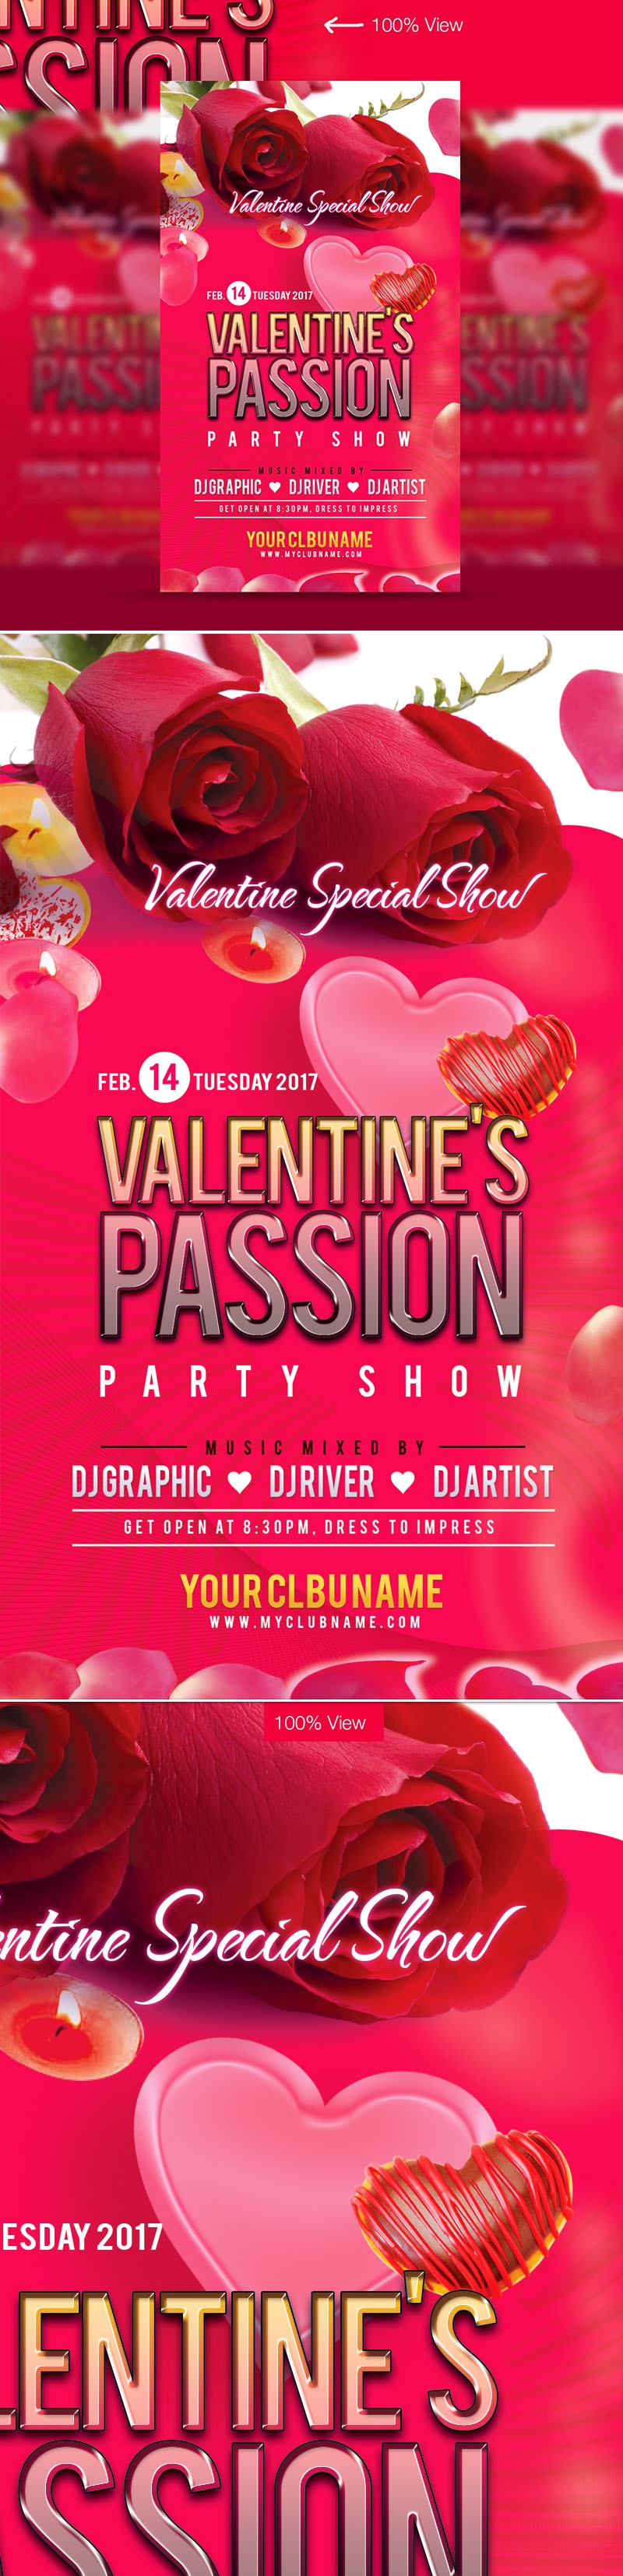 Valentine Party Pink Flyer